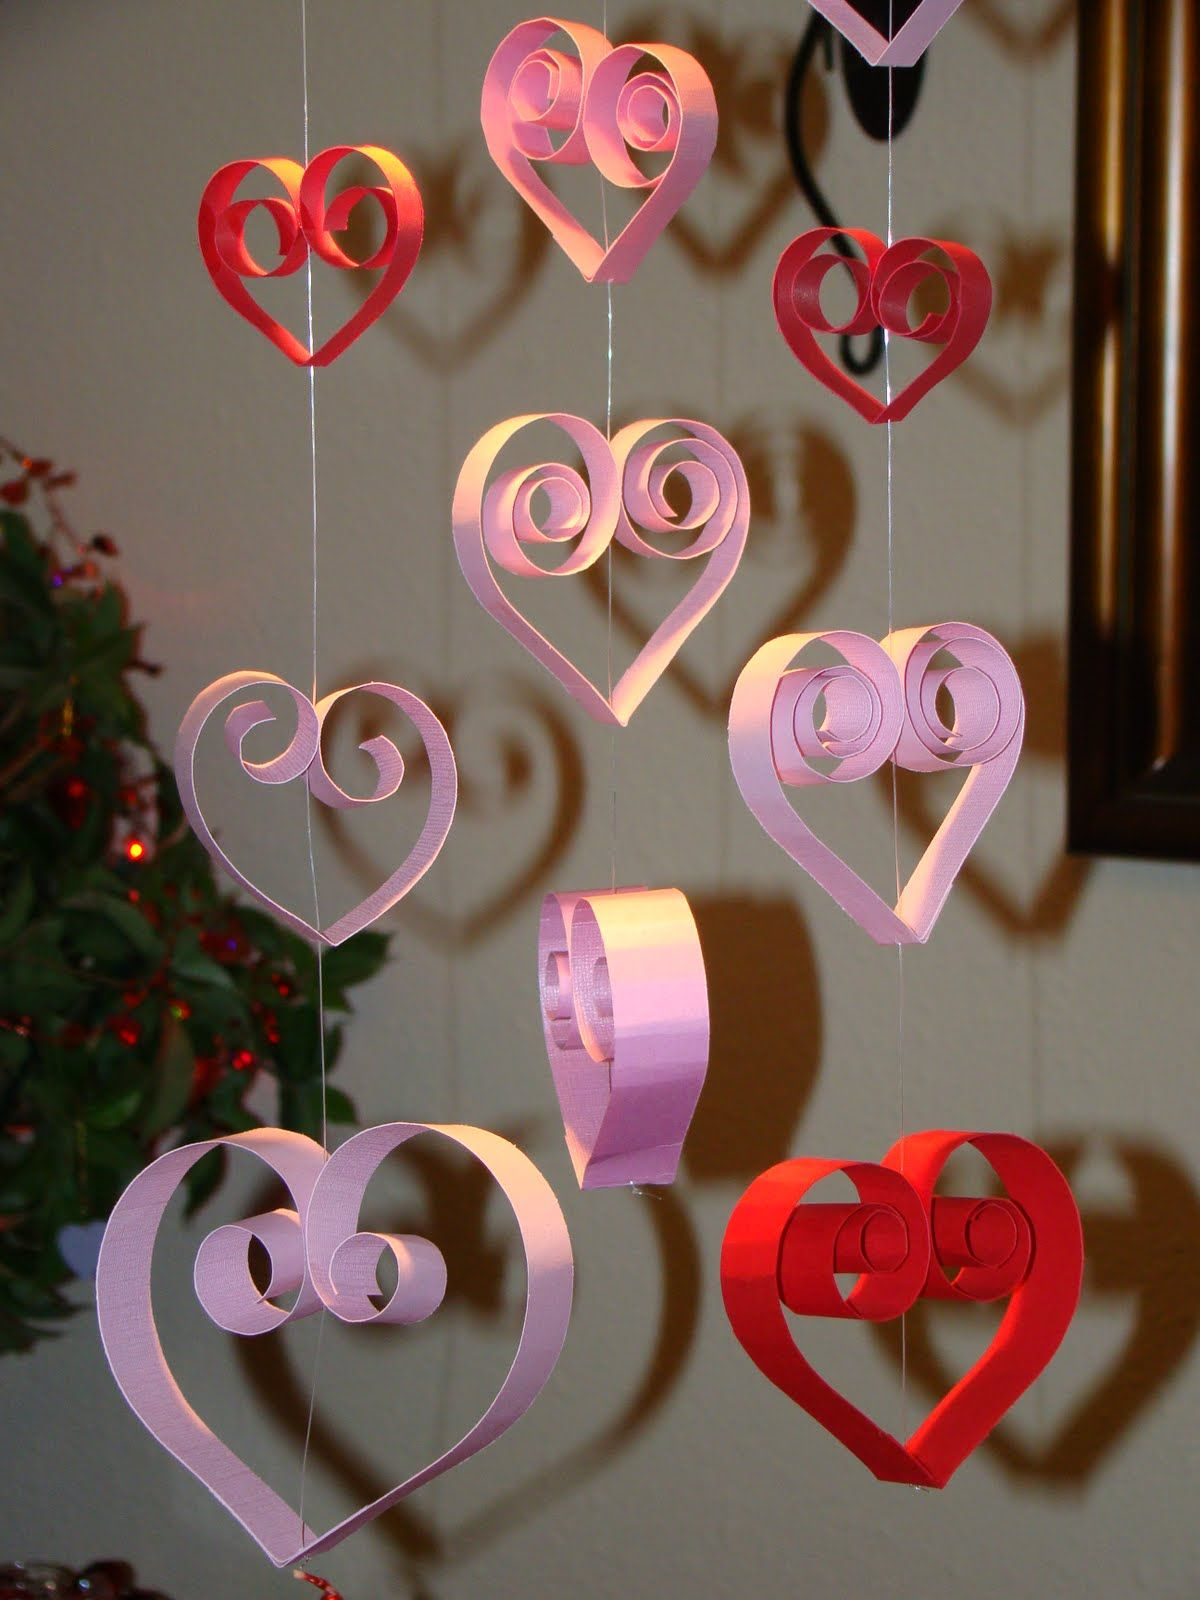 7 diy mom valentine decorations - Valentine Decorations To Make